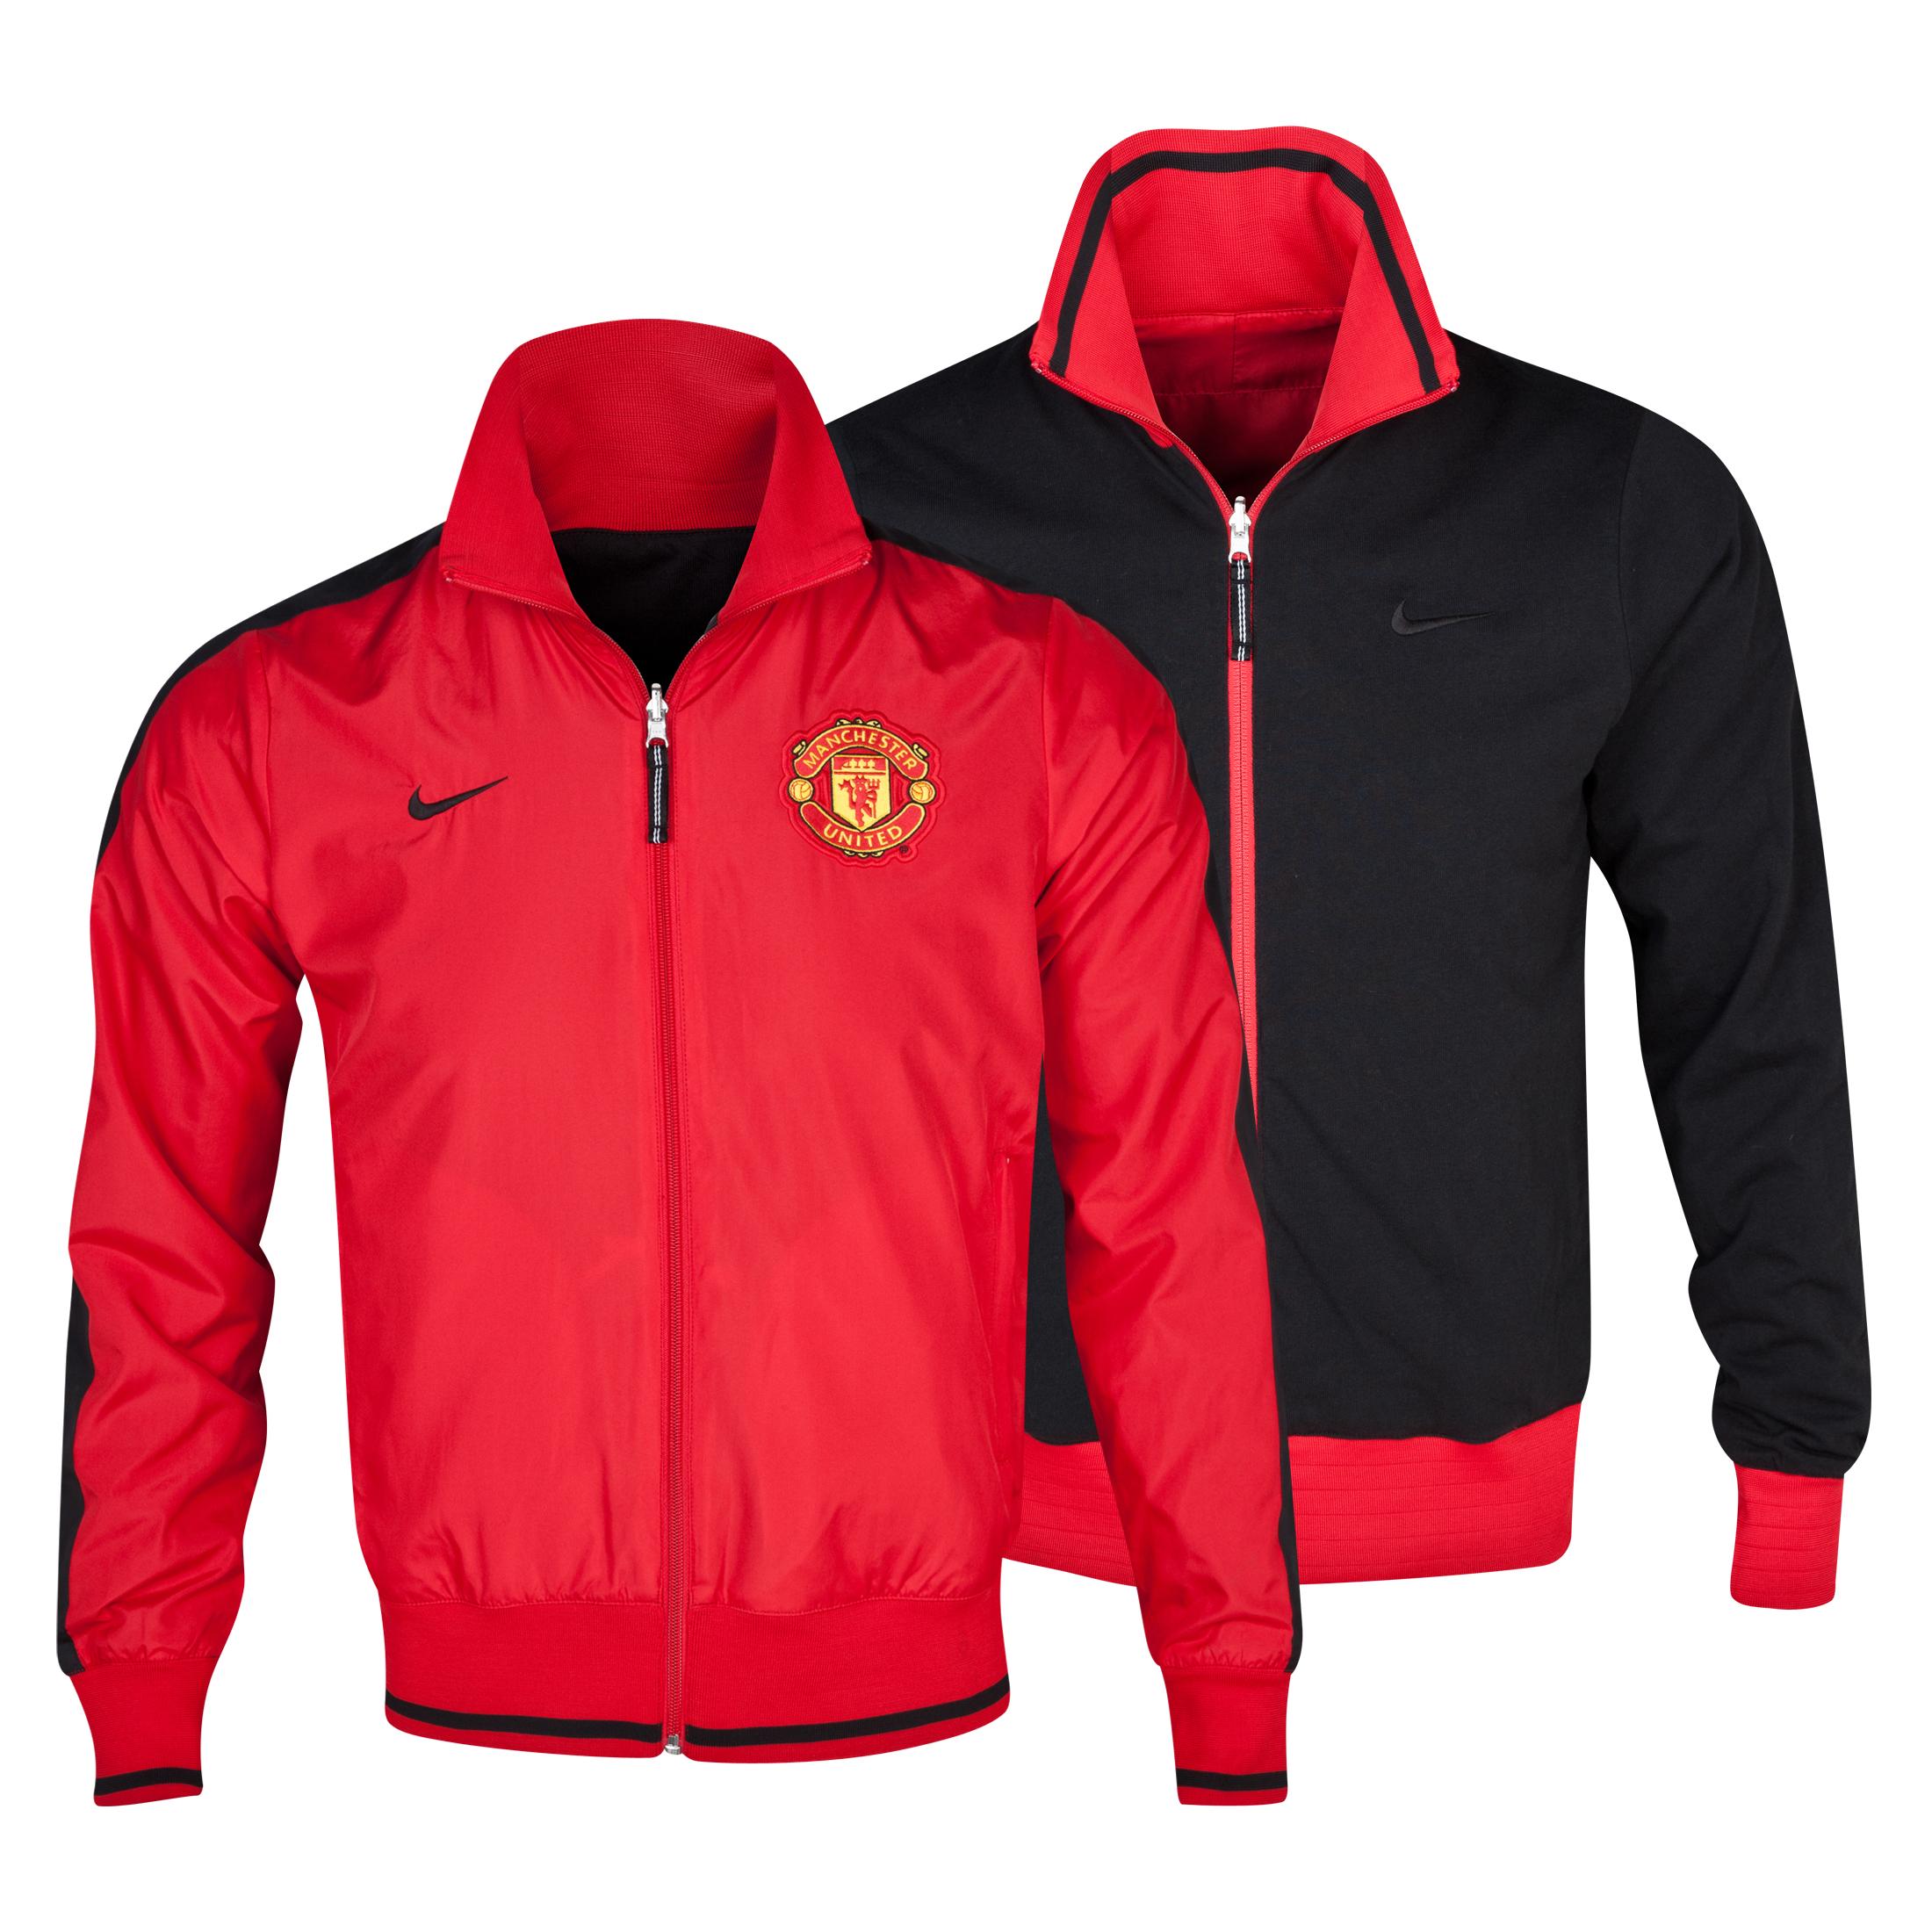 Manchester United Authentic Reversible Jacket - Diablo Red/Black